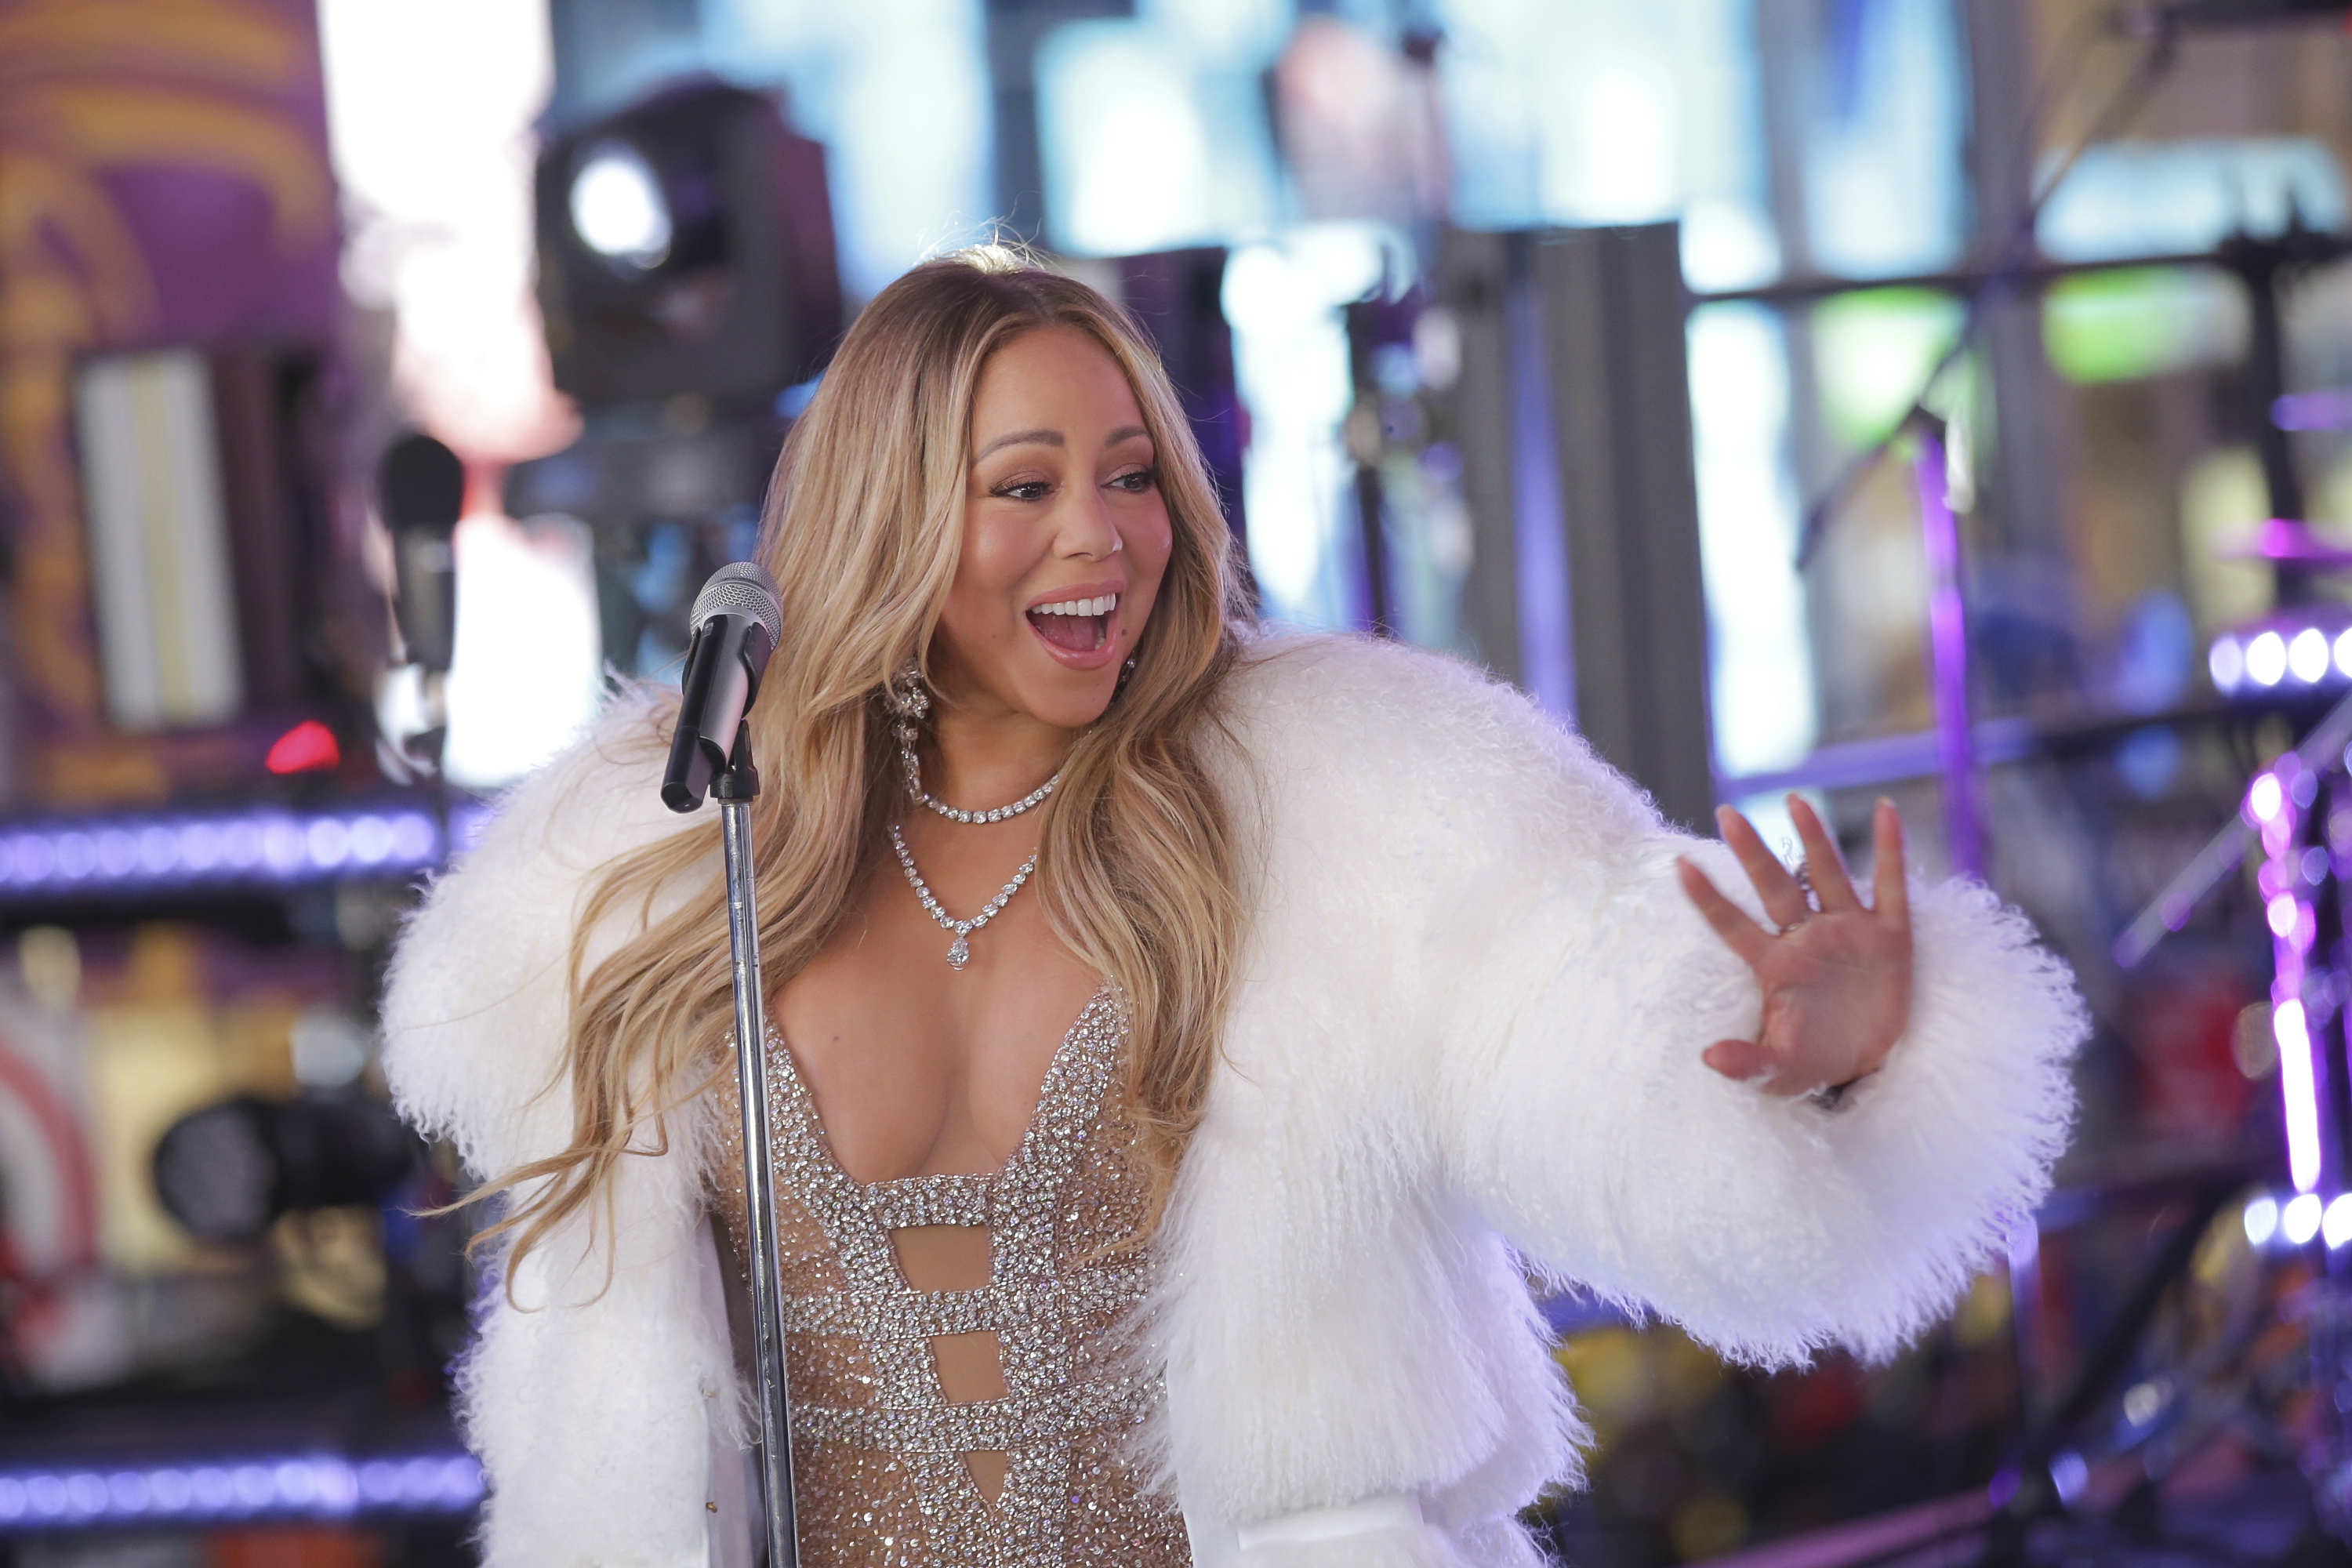 <div class='meta'><div class='origin-logo' data-origin='AP'></div><span class='caption-text' data-credit='Brent N. Clarke/Invision/AP'>Mariah Carey performs on stage at the New Year's Eve celebration in Times Square on Sunday, Dec. 31, 2017, in New York.</span></div>